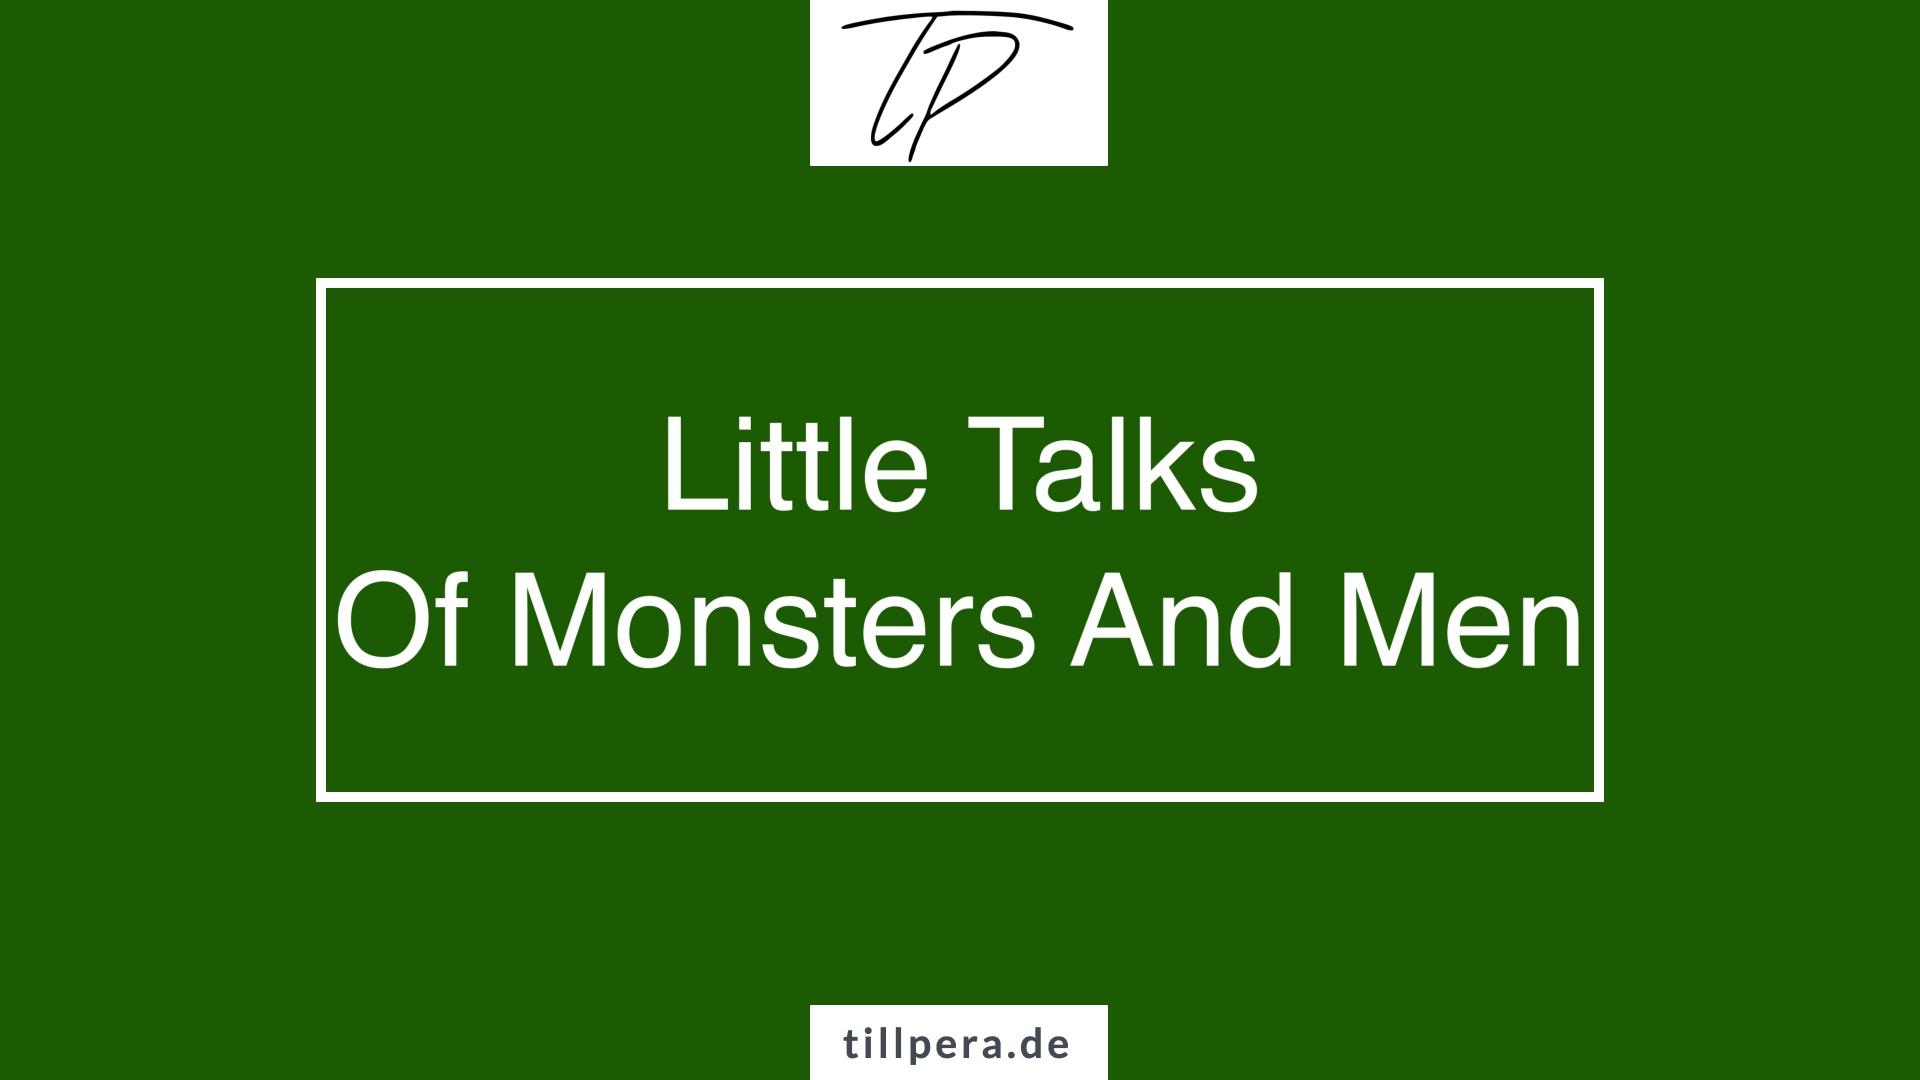 Till Pera Gitarre lernen Braunschweig Unterricht Of Monsters And Men Little Talks